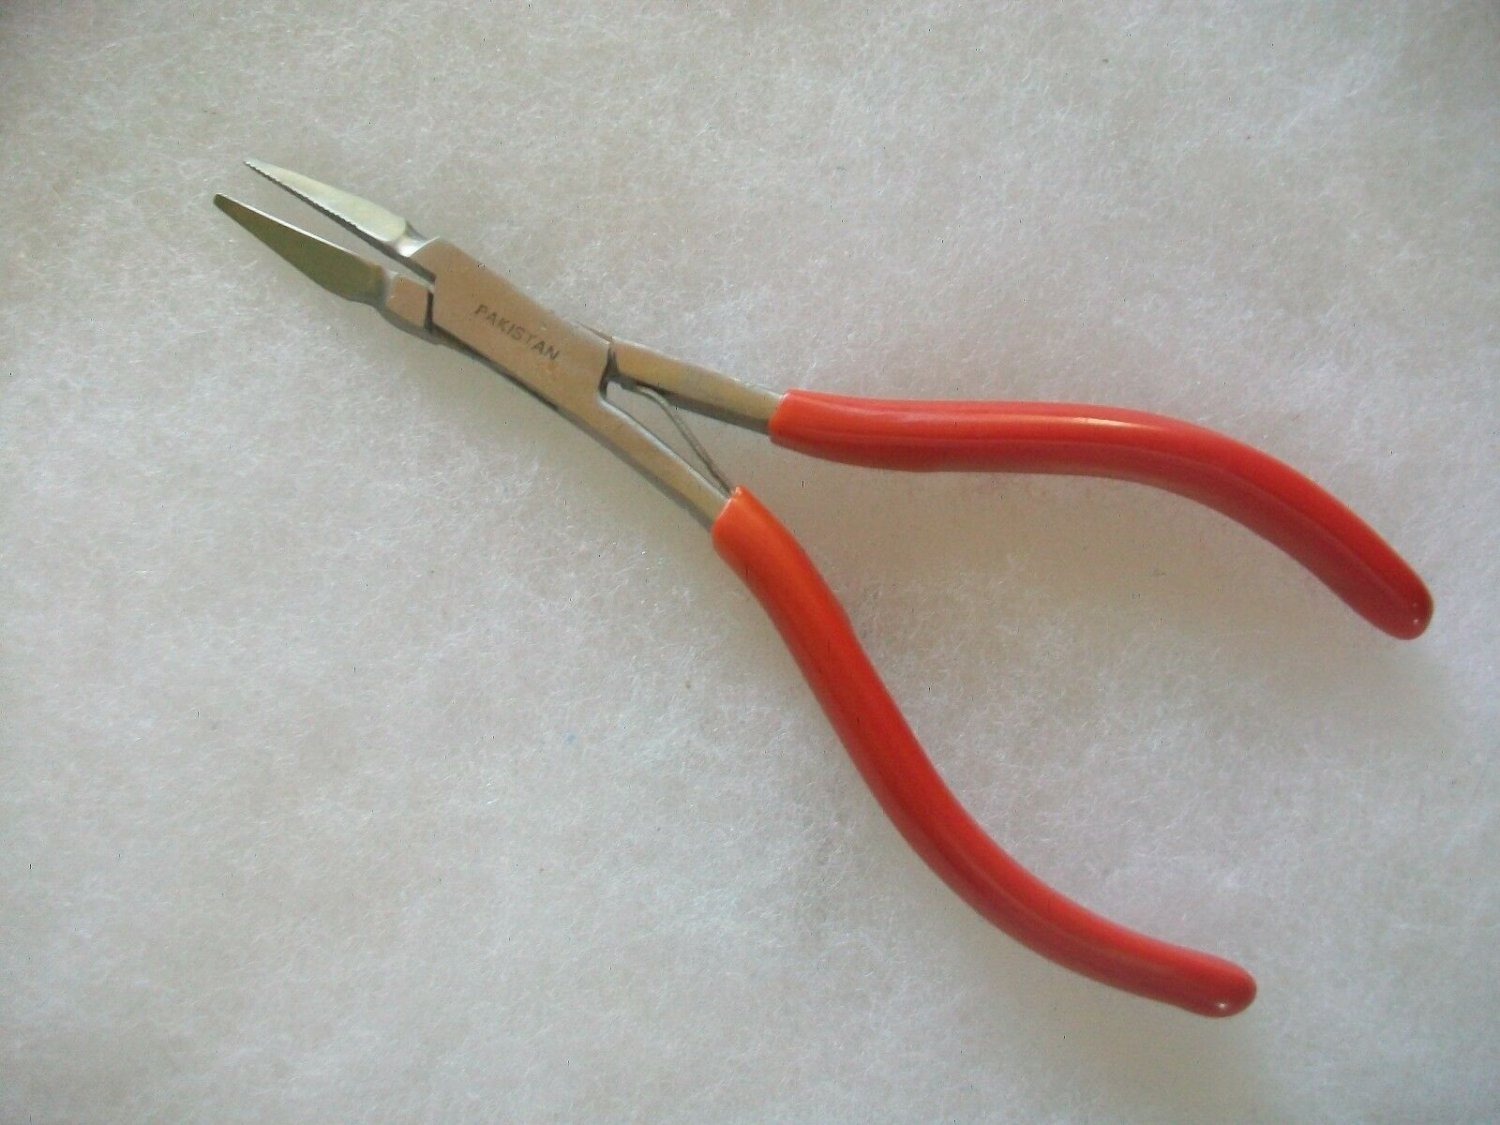 Bead Jewelry Pliers 6'' Serrated Jaws PVC Dipped Handles Spring Loaded